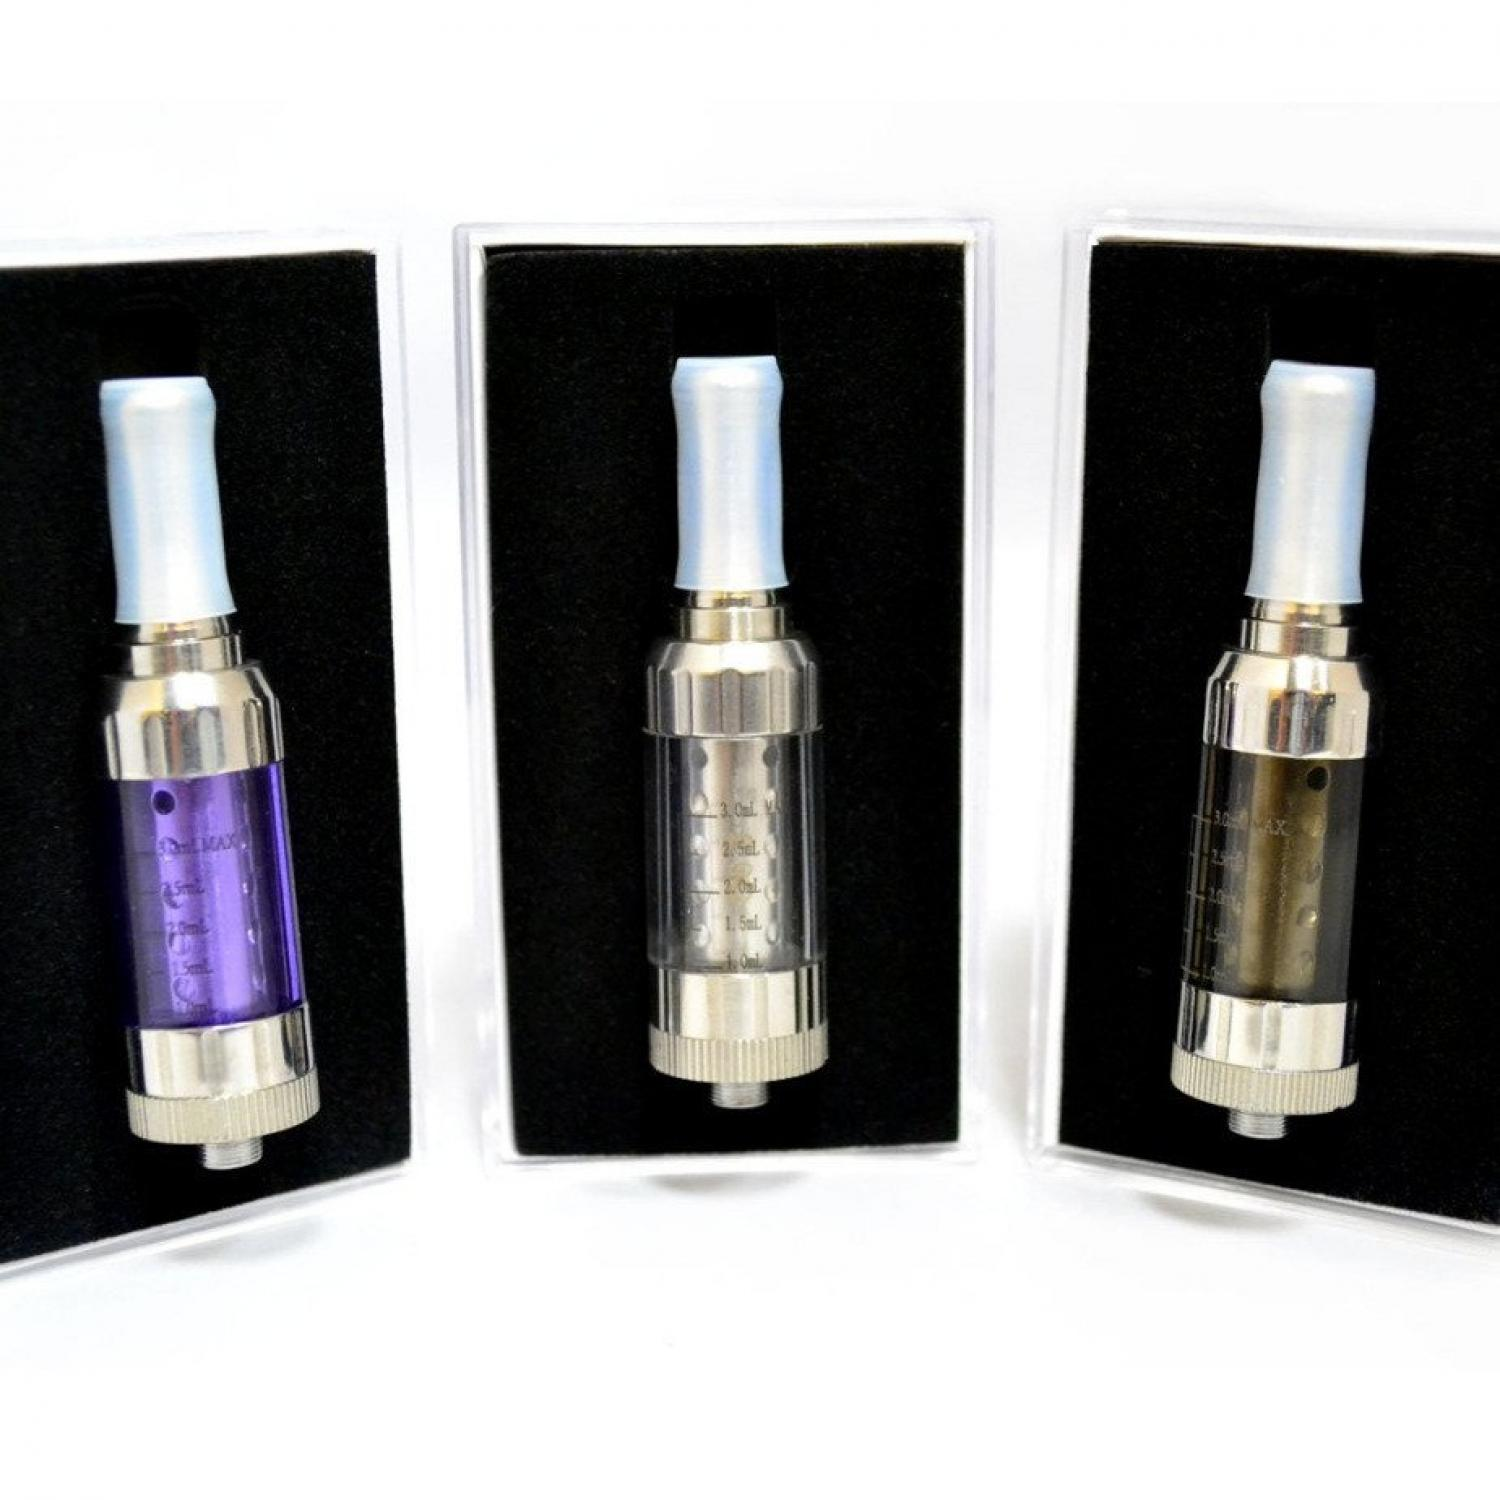 Innokin iClear 30S Dual Coil Clearomizer NonRotatable Drip Tip 2.1 Ohm